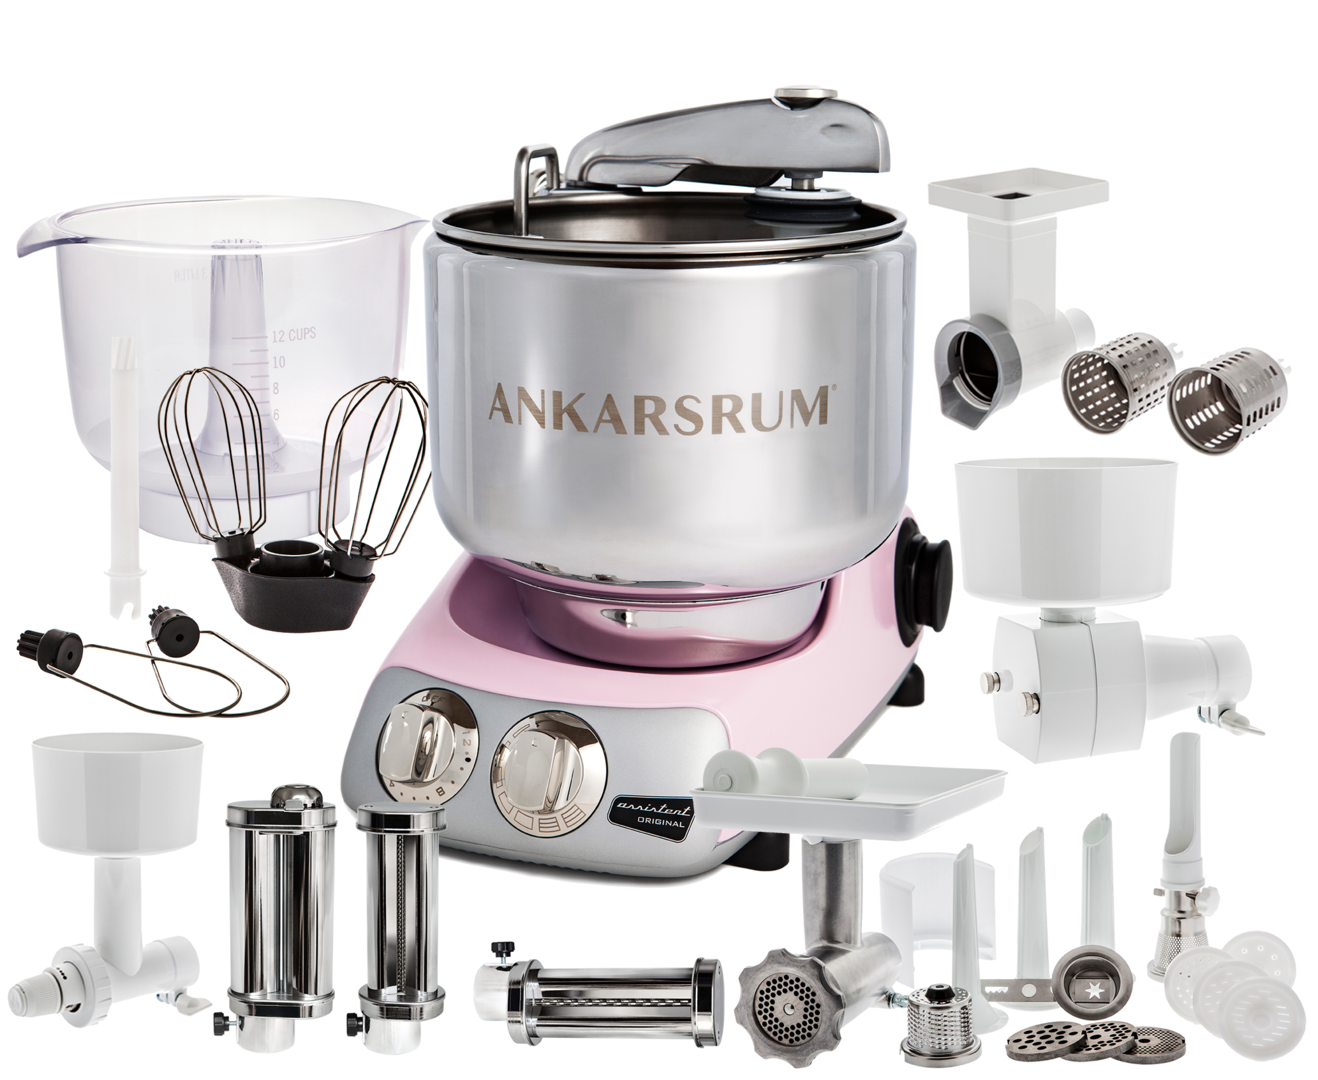 Ankarsrum Original AKM6230B Total mixer, Pink (2300103)